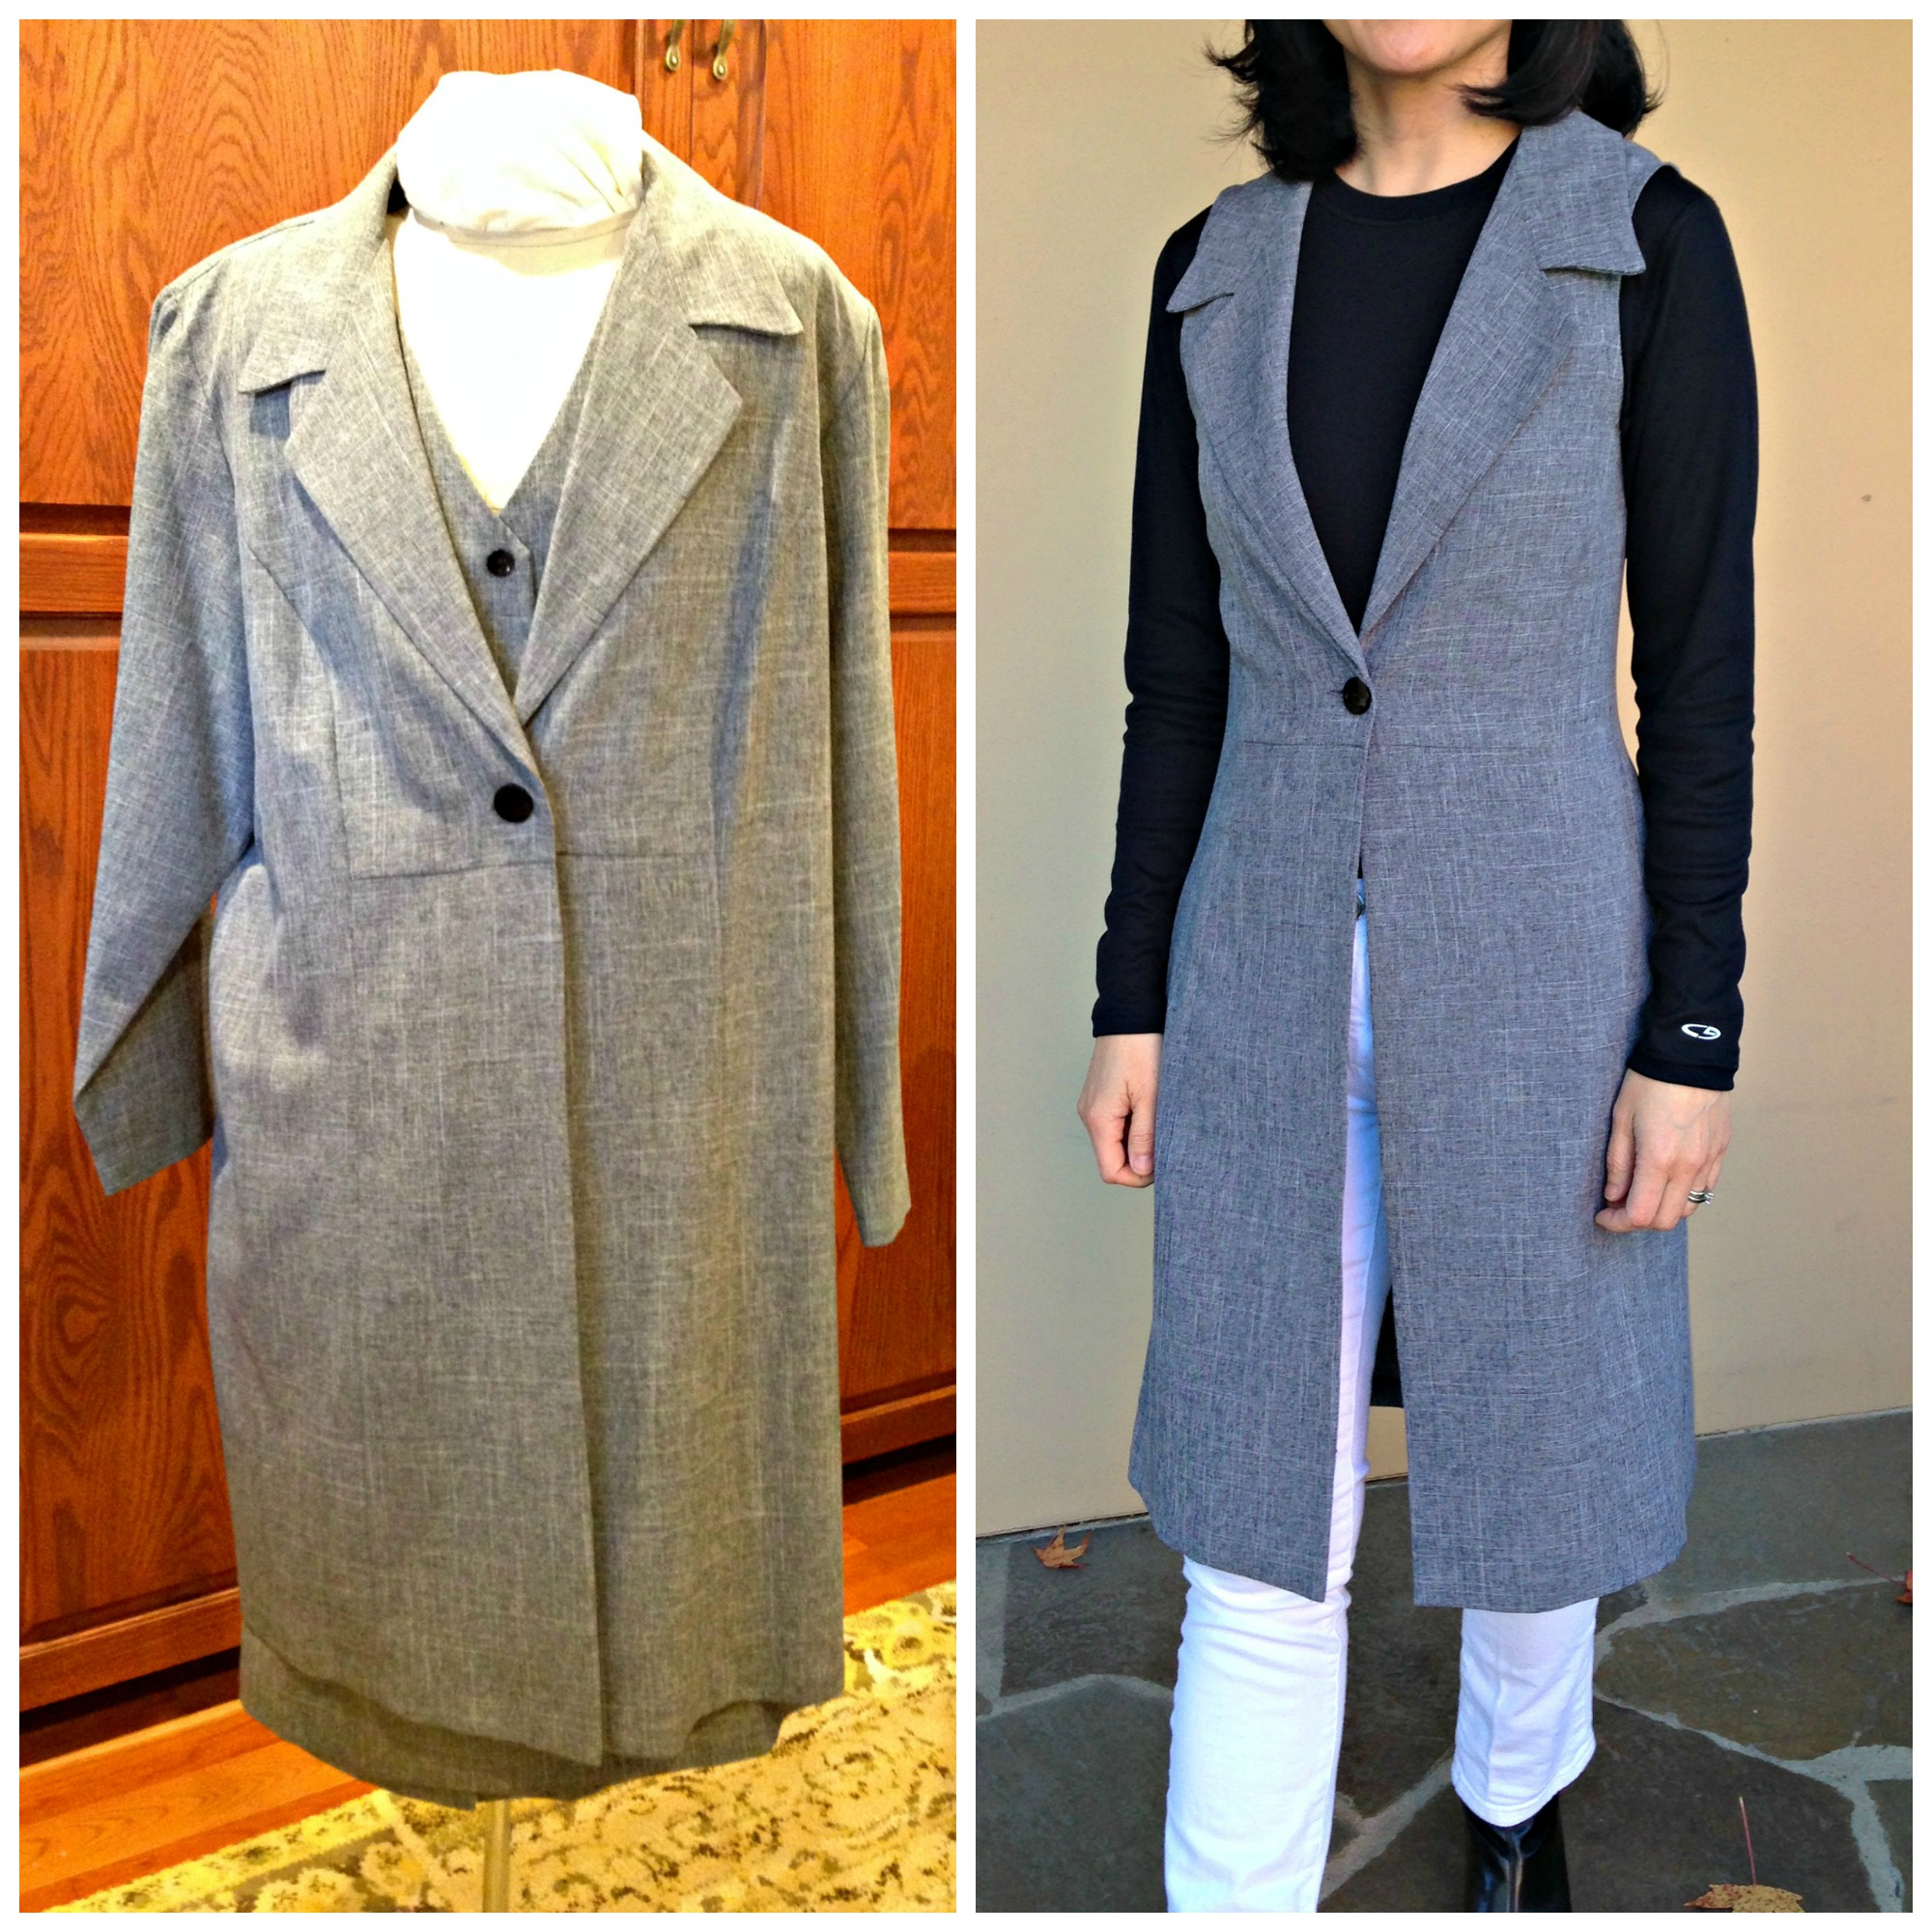 Refashioned sleeveless coat from an enormous suit